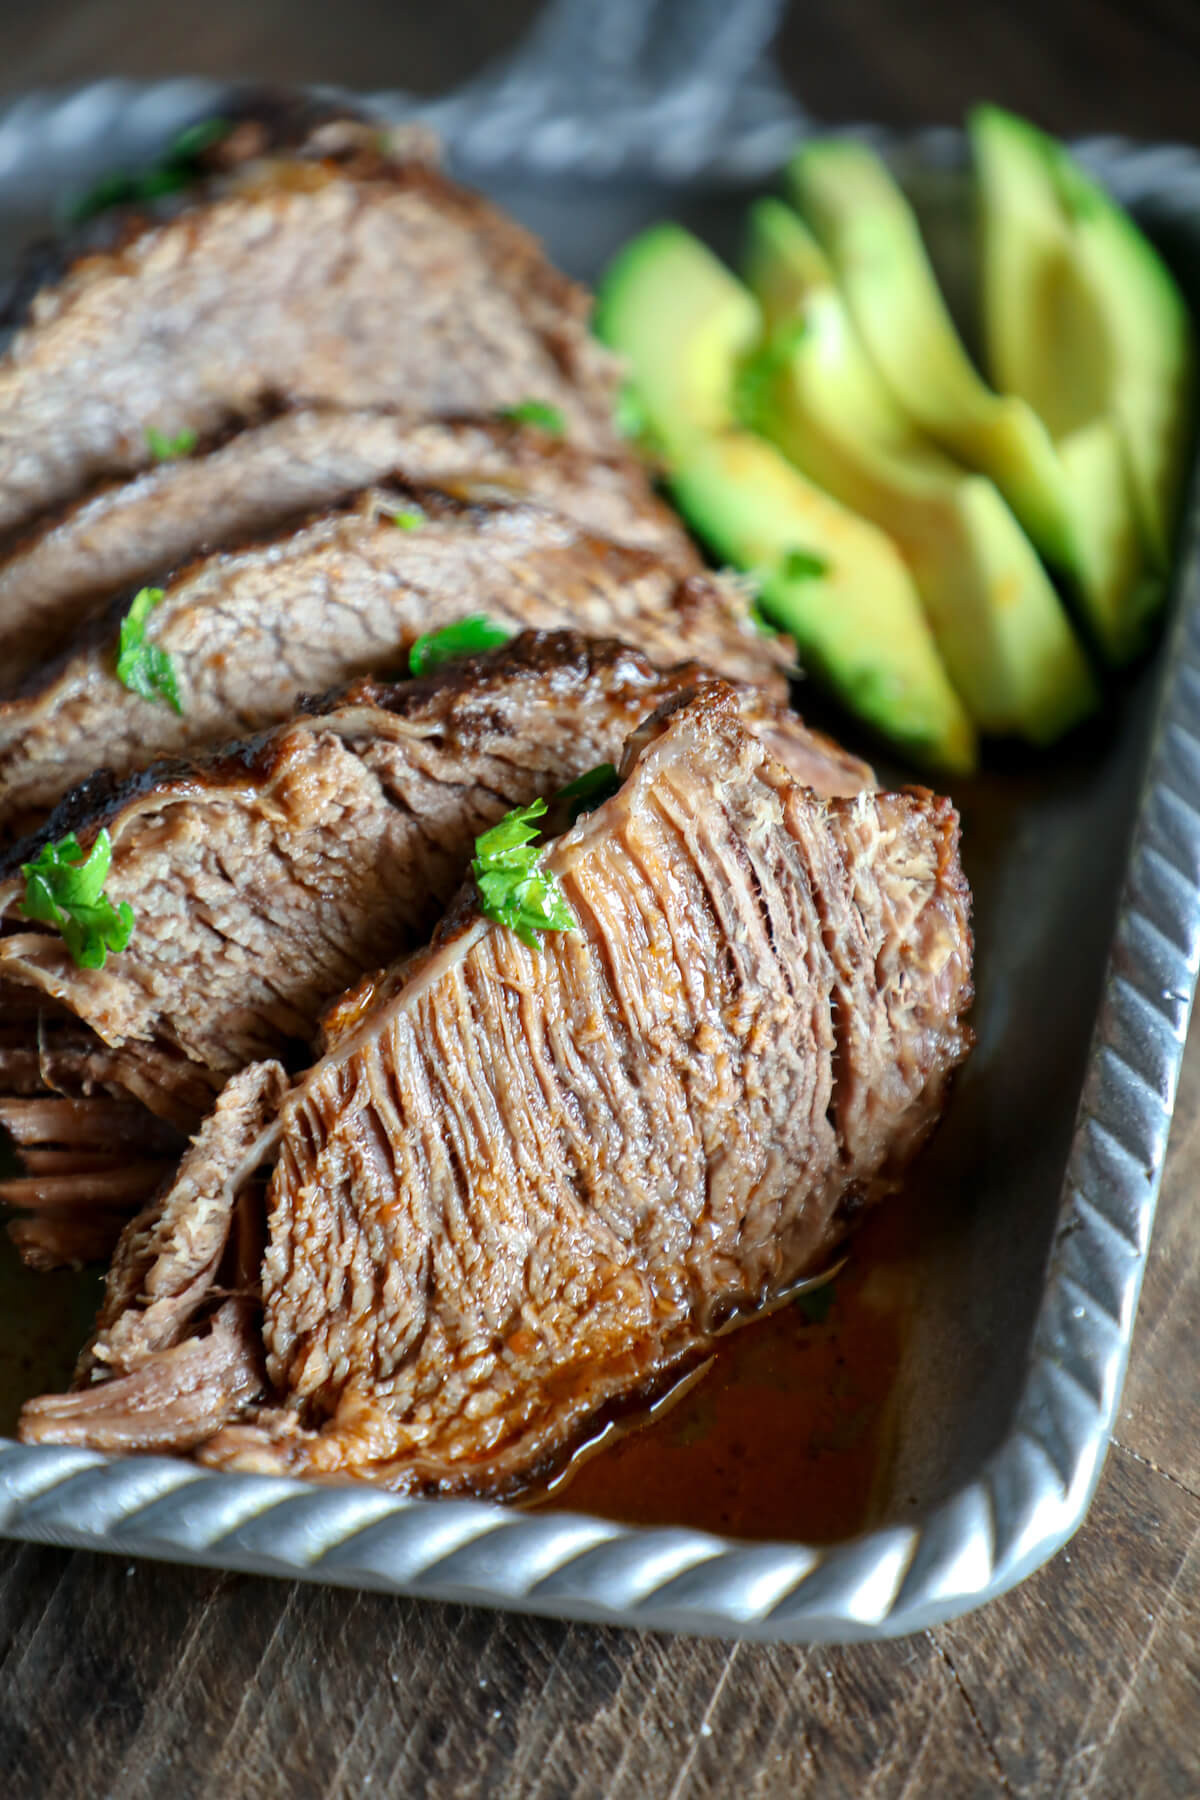 Instapot Keto Beef  Keto Beef Brisket in the Instant Pot Low Carb